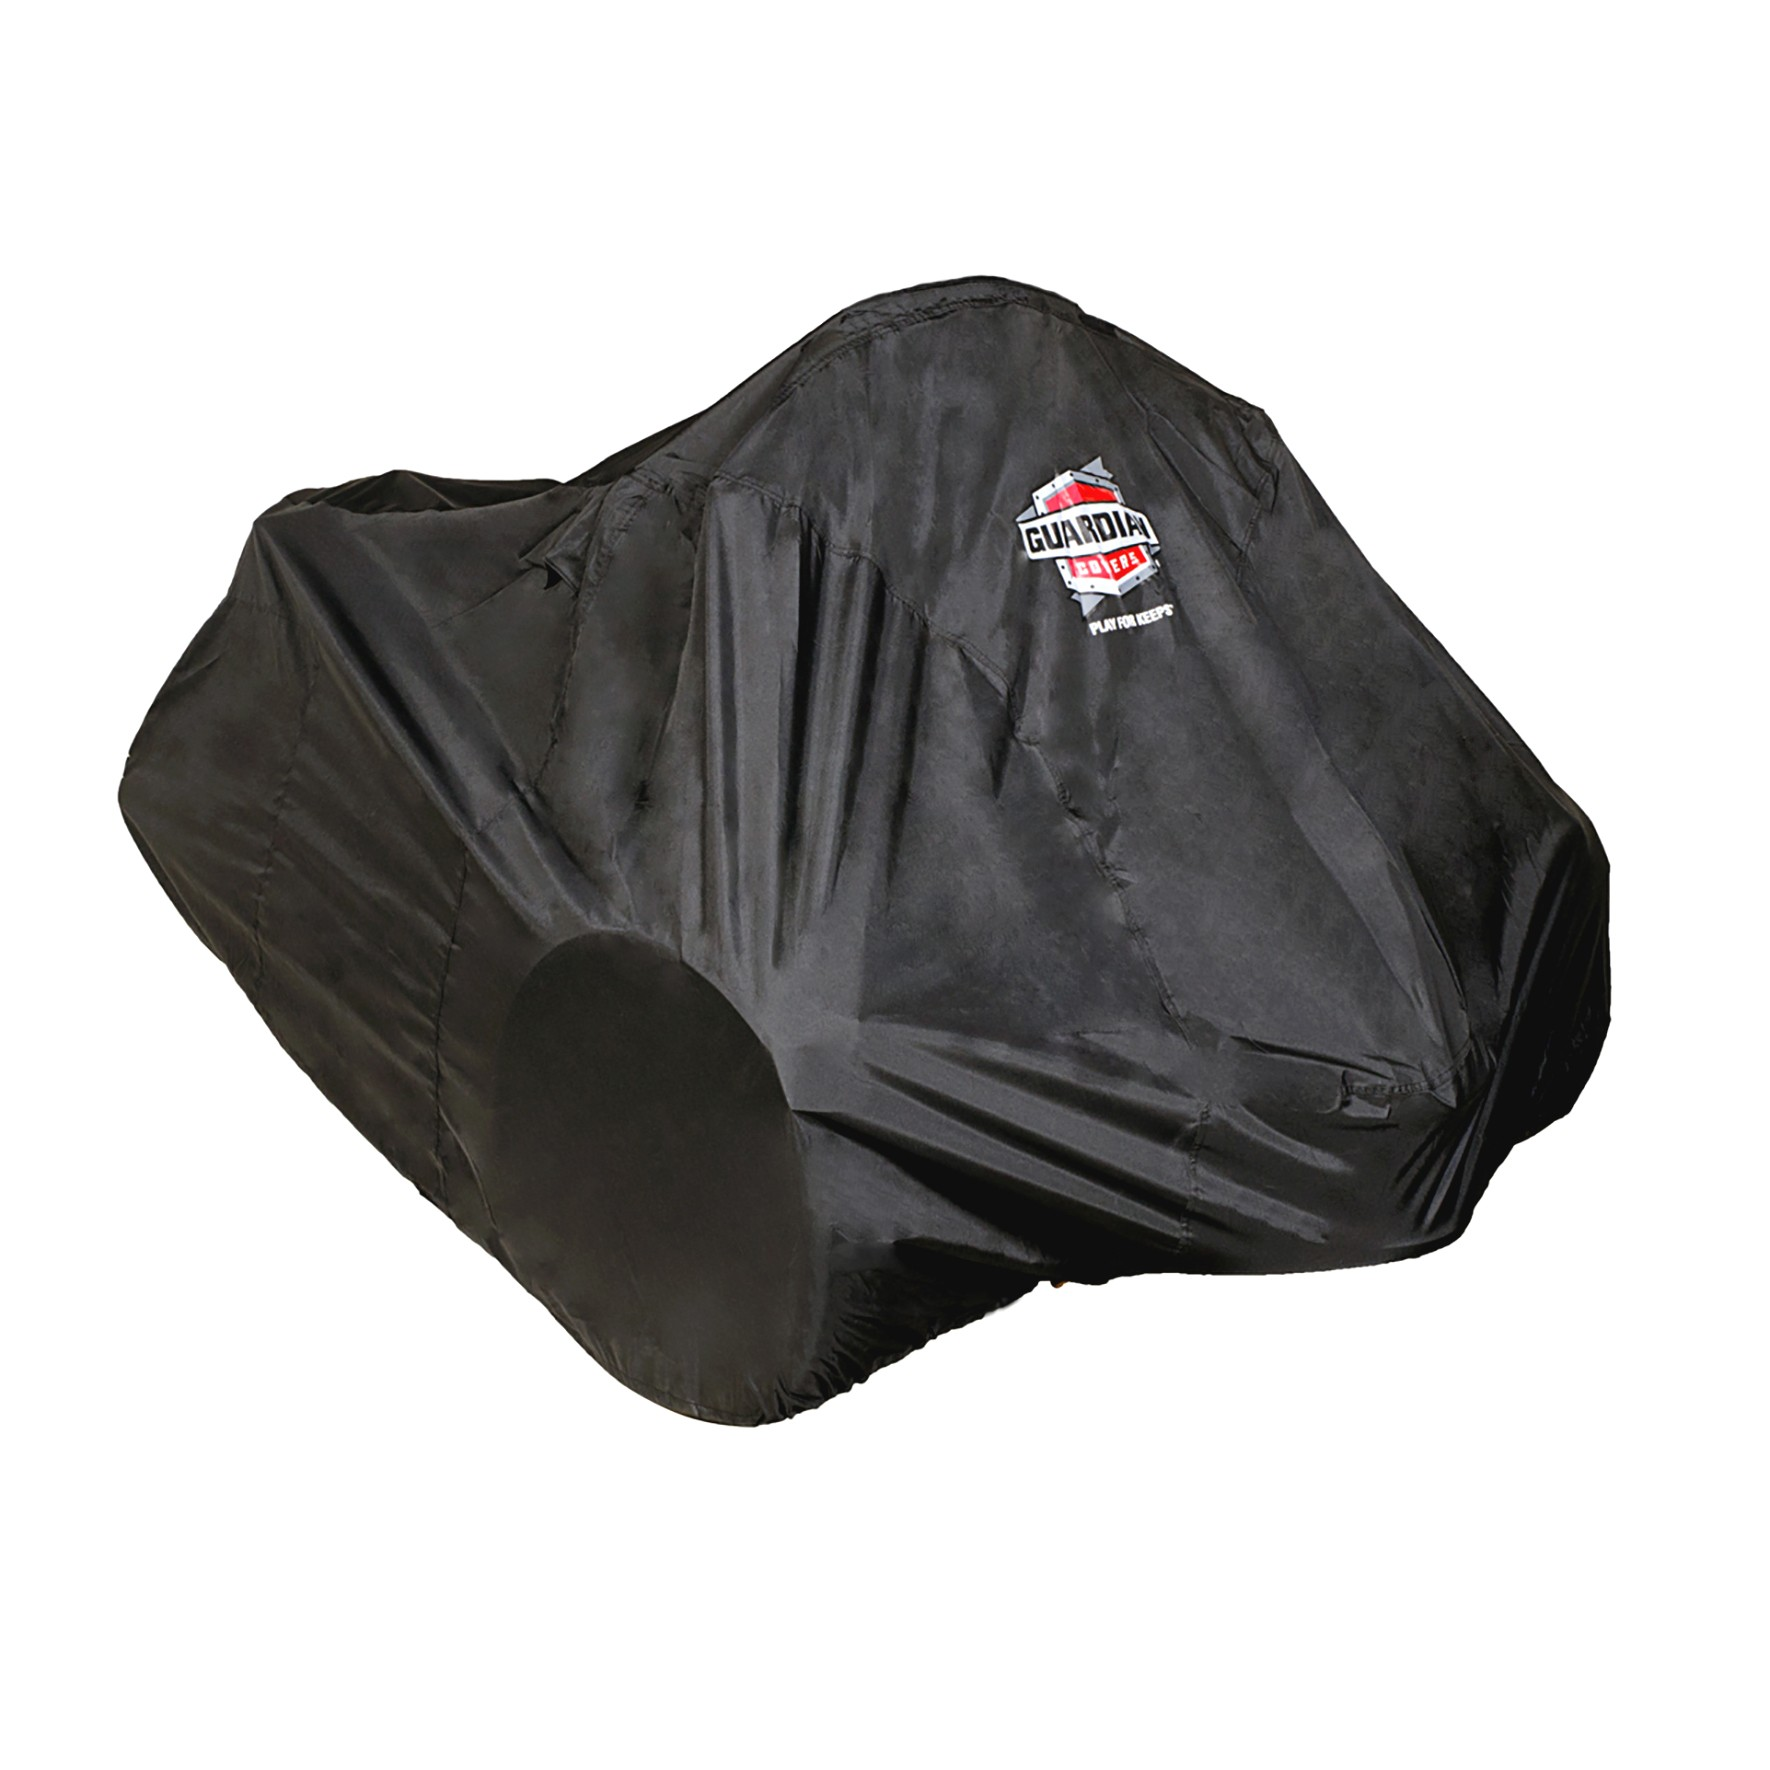 Dowco WeatherAll Plus Cover for the Can-Am Spyder